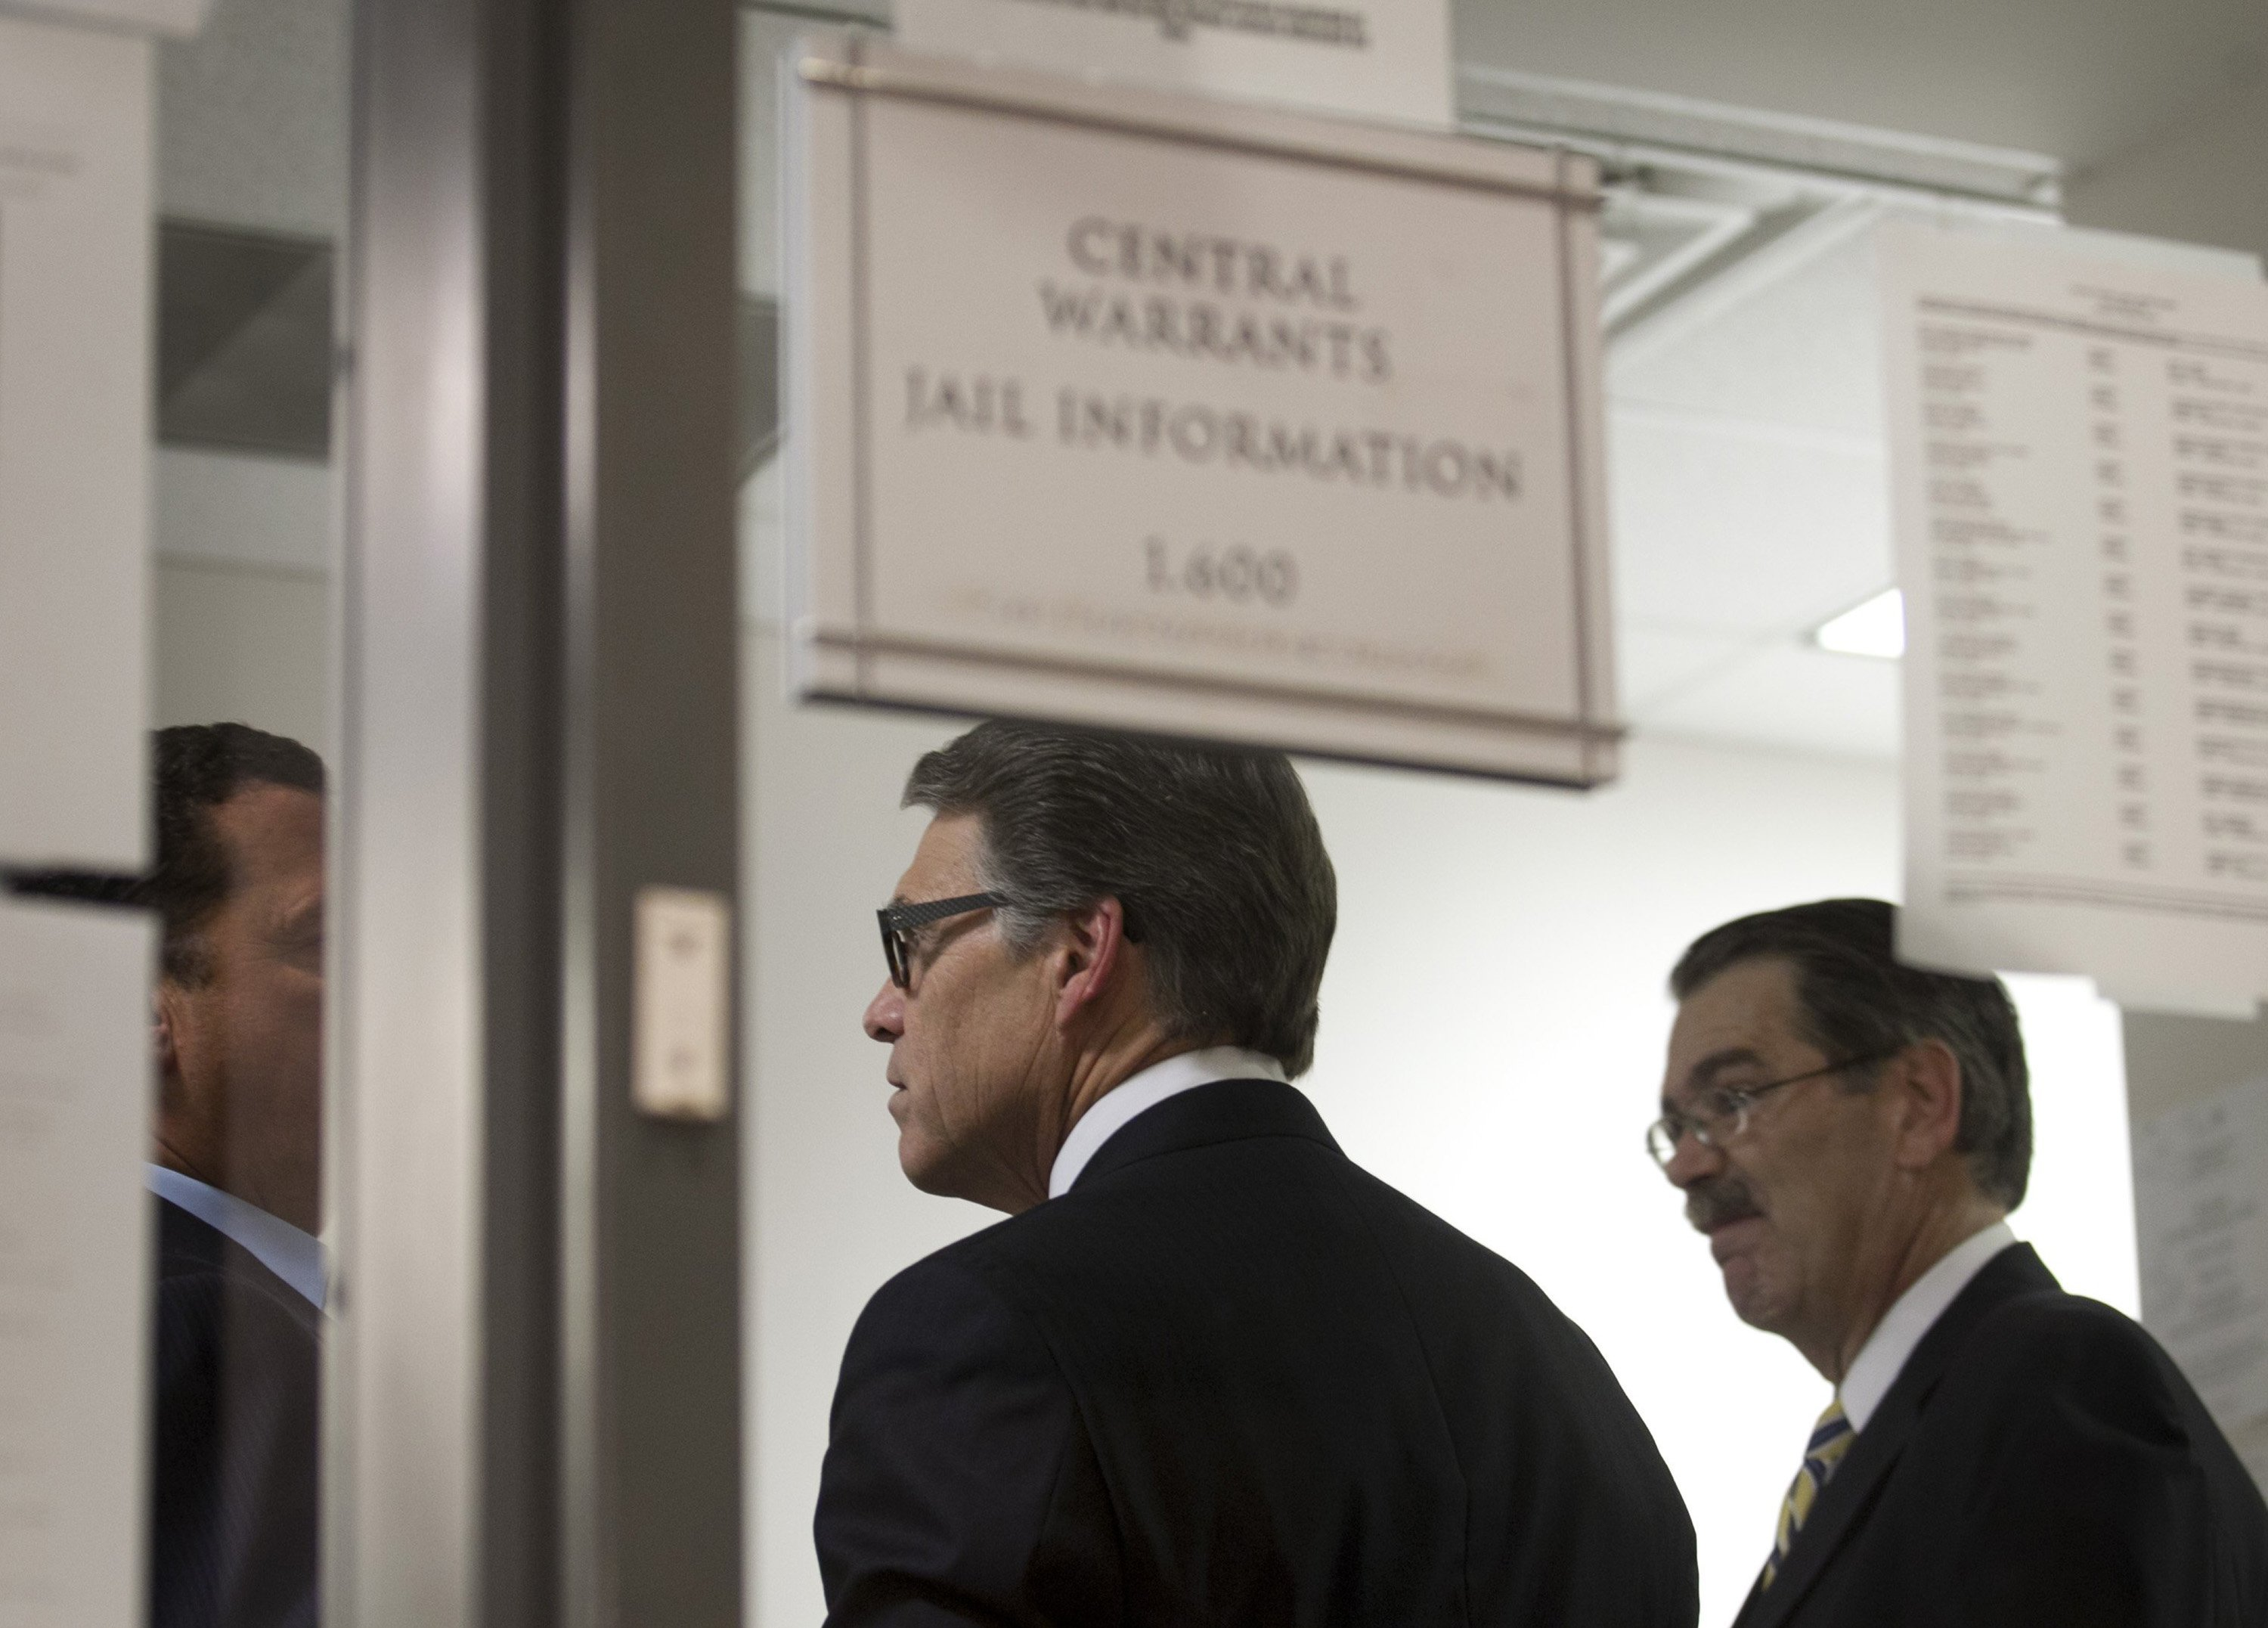 Texas Gov. Rick Perry, middle, is booked at the Blackwell-Thurman Criminal Justice Center in Austin, Texas, for two felony indictments of abuse of power on Tuesday August 19, 2014. (Jay Janner/Austin American-Statesman/MCT)